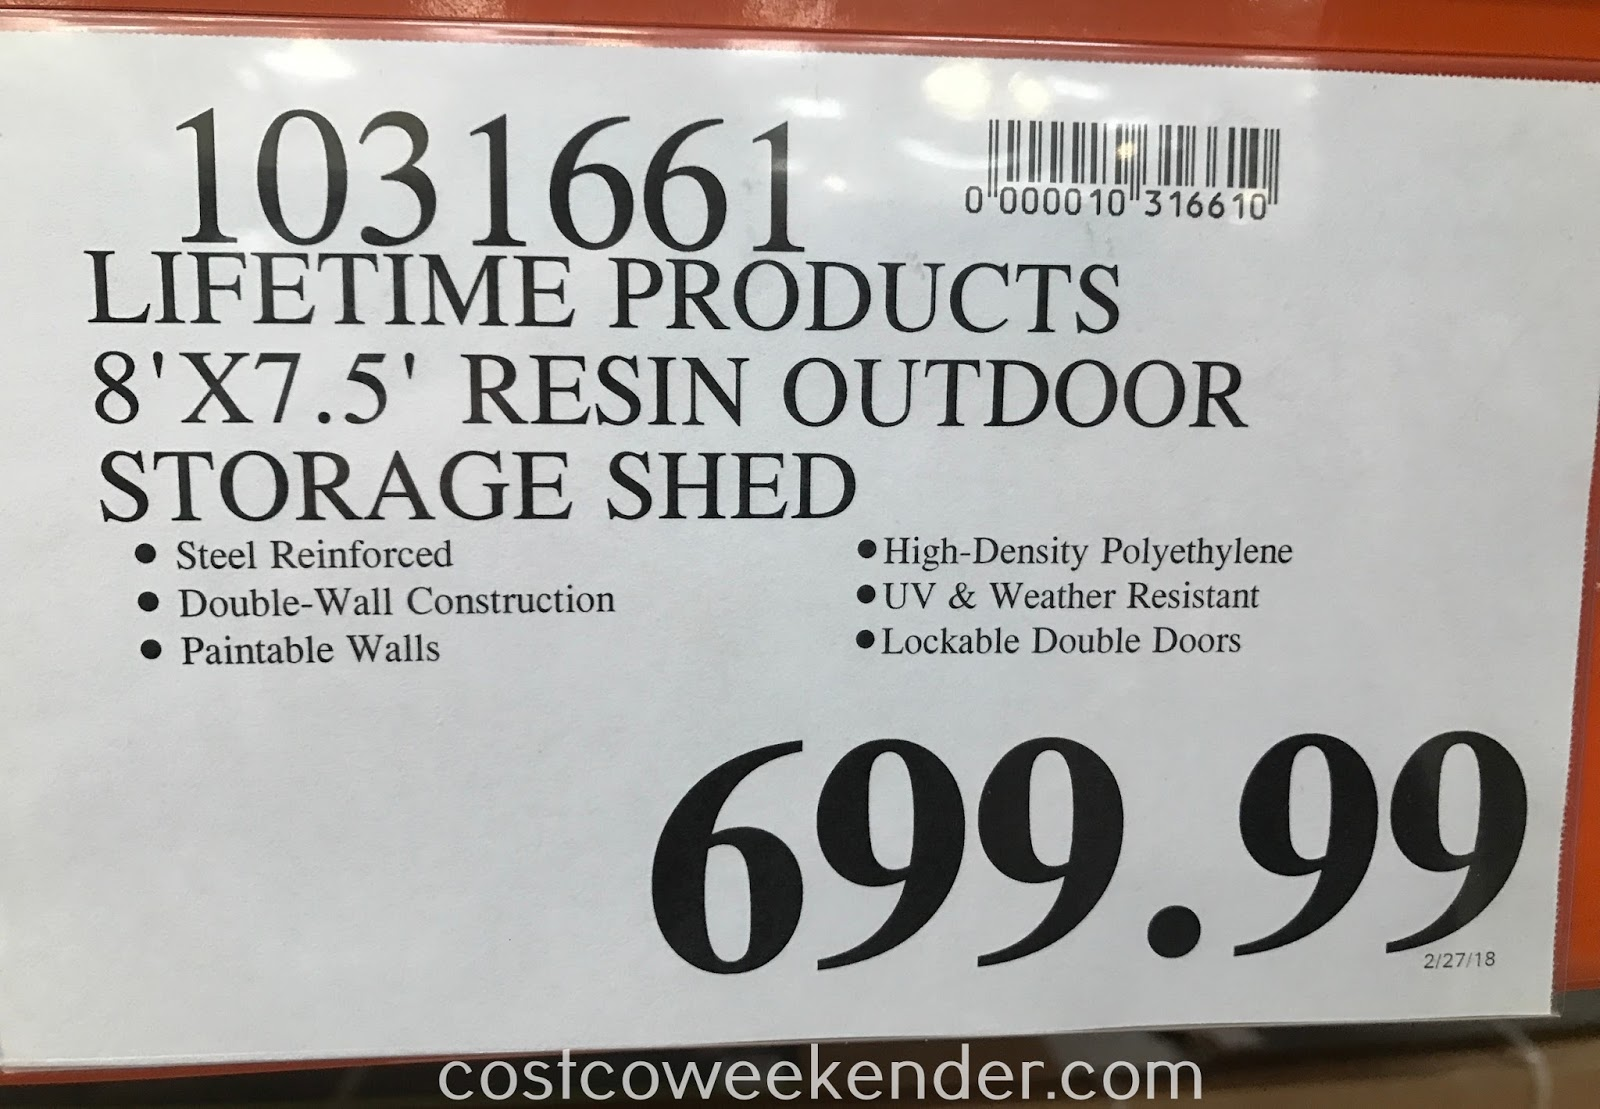 Deal for the Lifetime Products Resin Outdoor Storage Shed at Costco